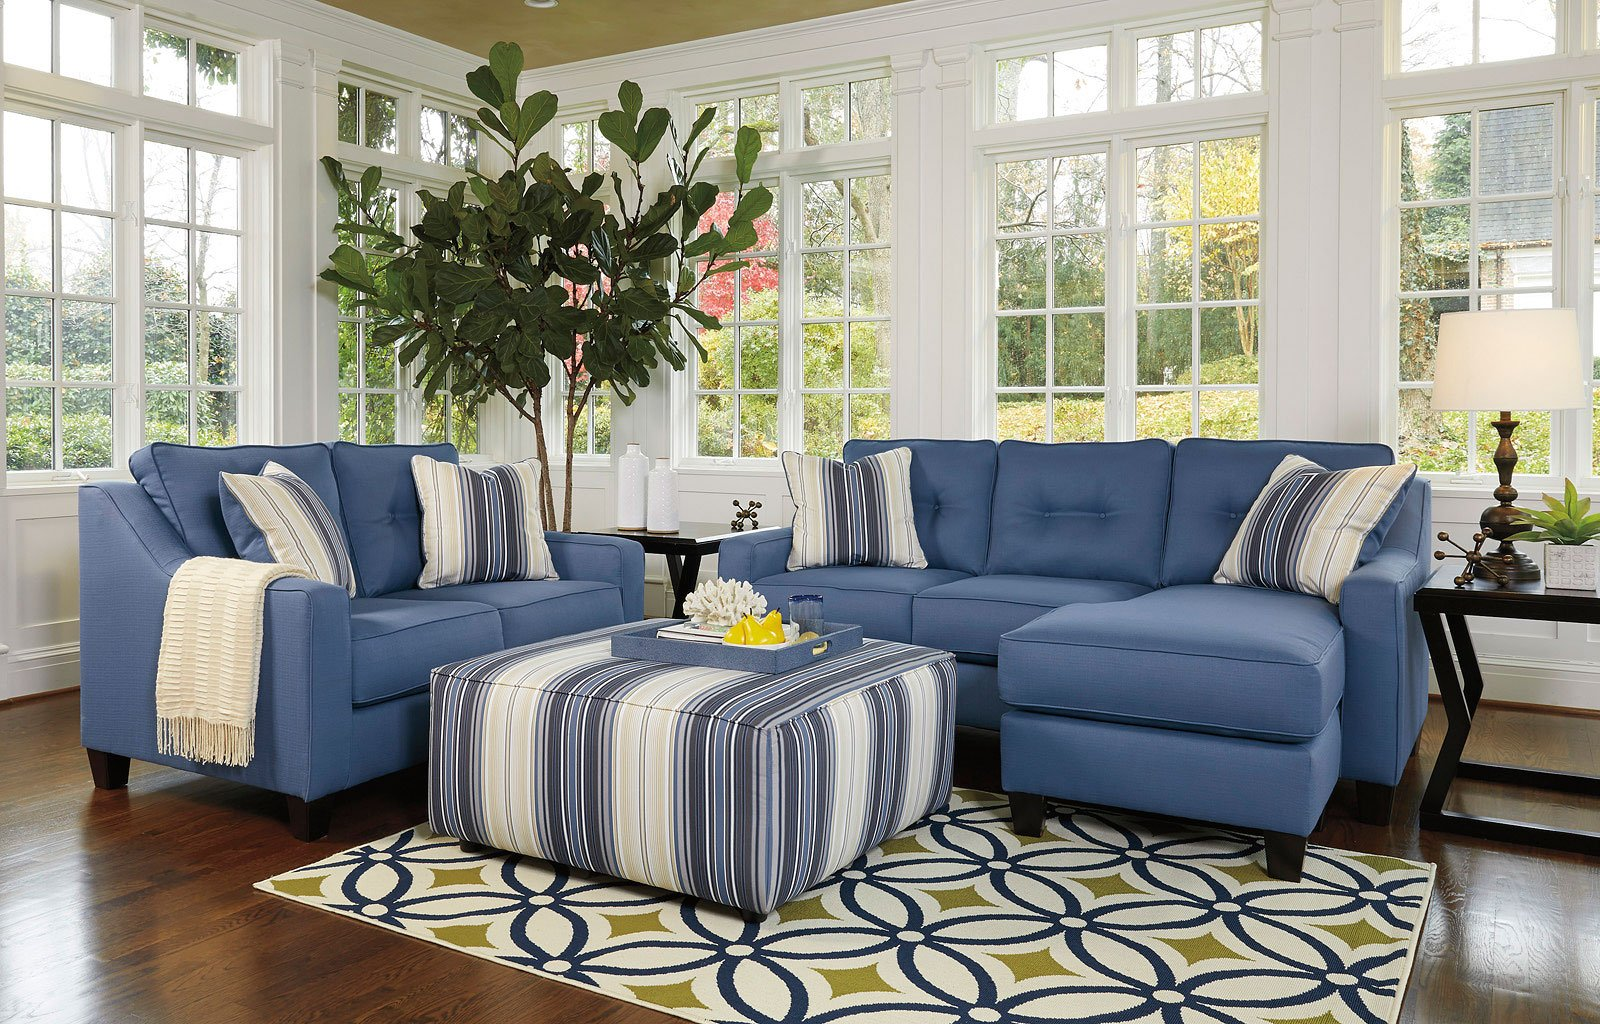 Aldie Nuvella Blue Living Room Set BenchCraft, 2 Reviews ...